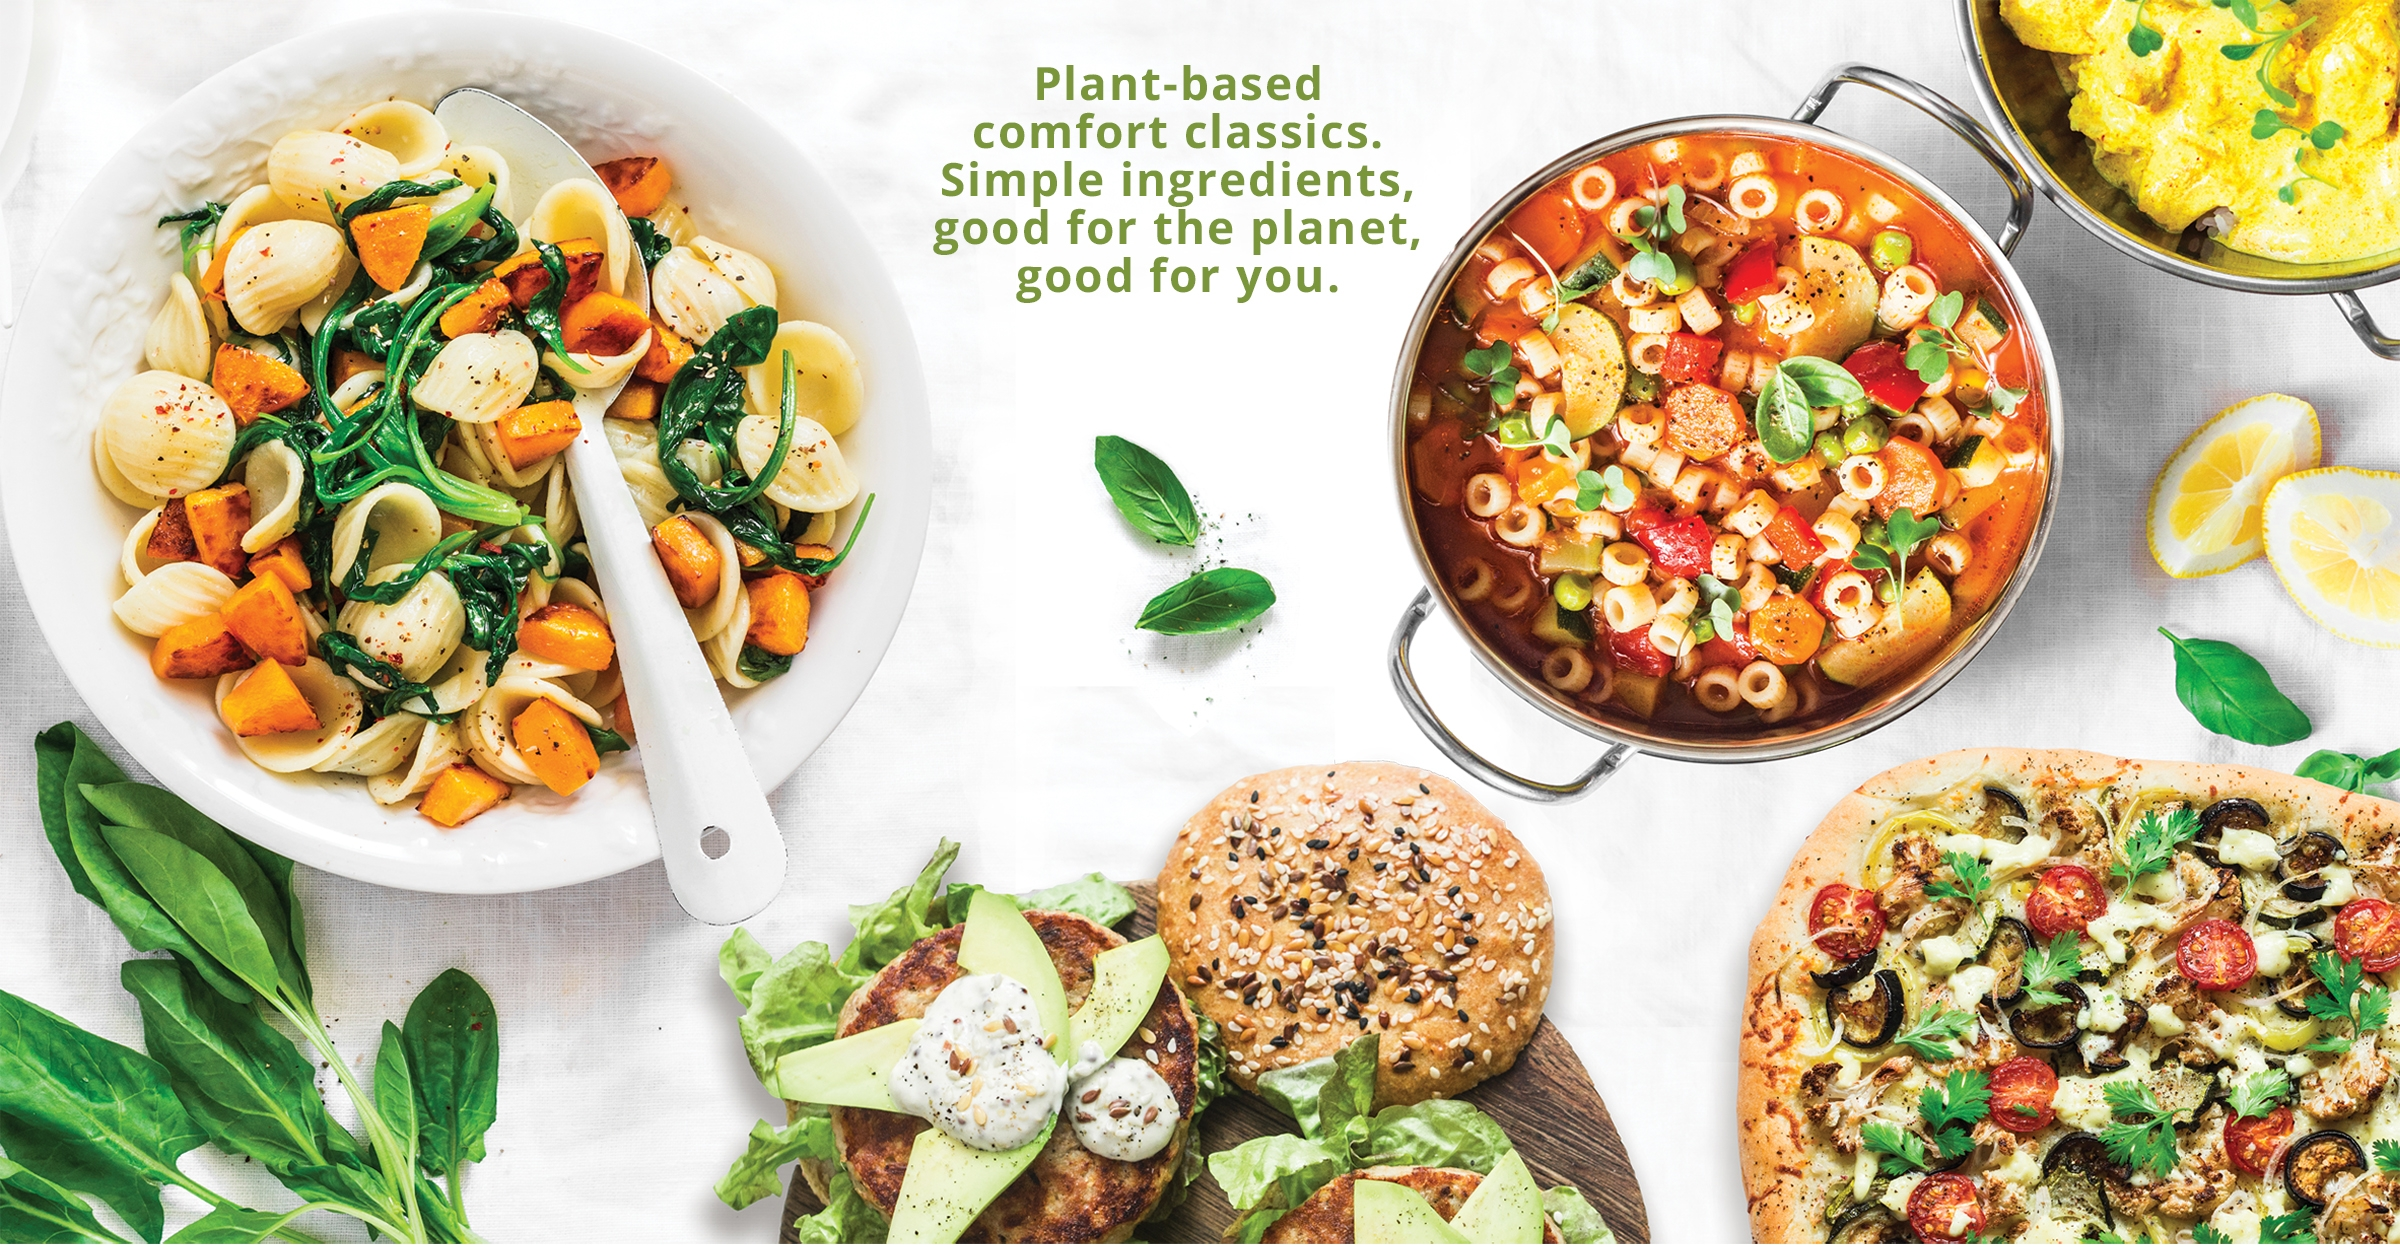 CUL_PLANT BASED_MIDDLE